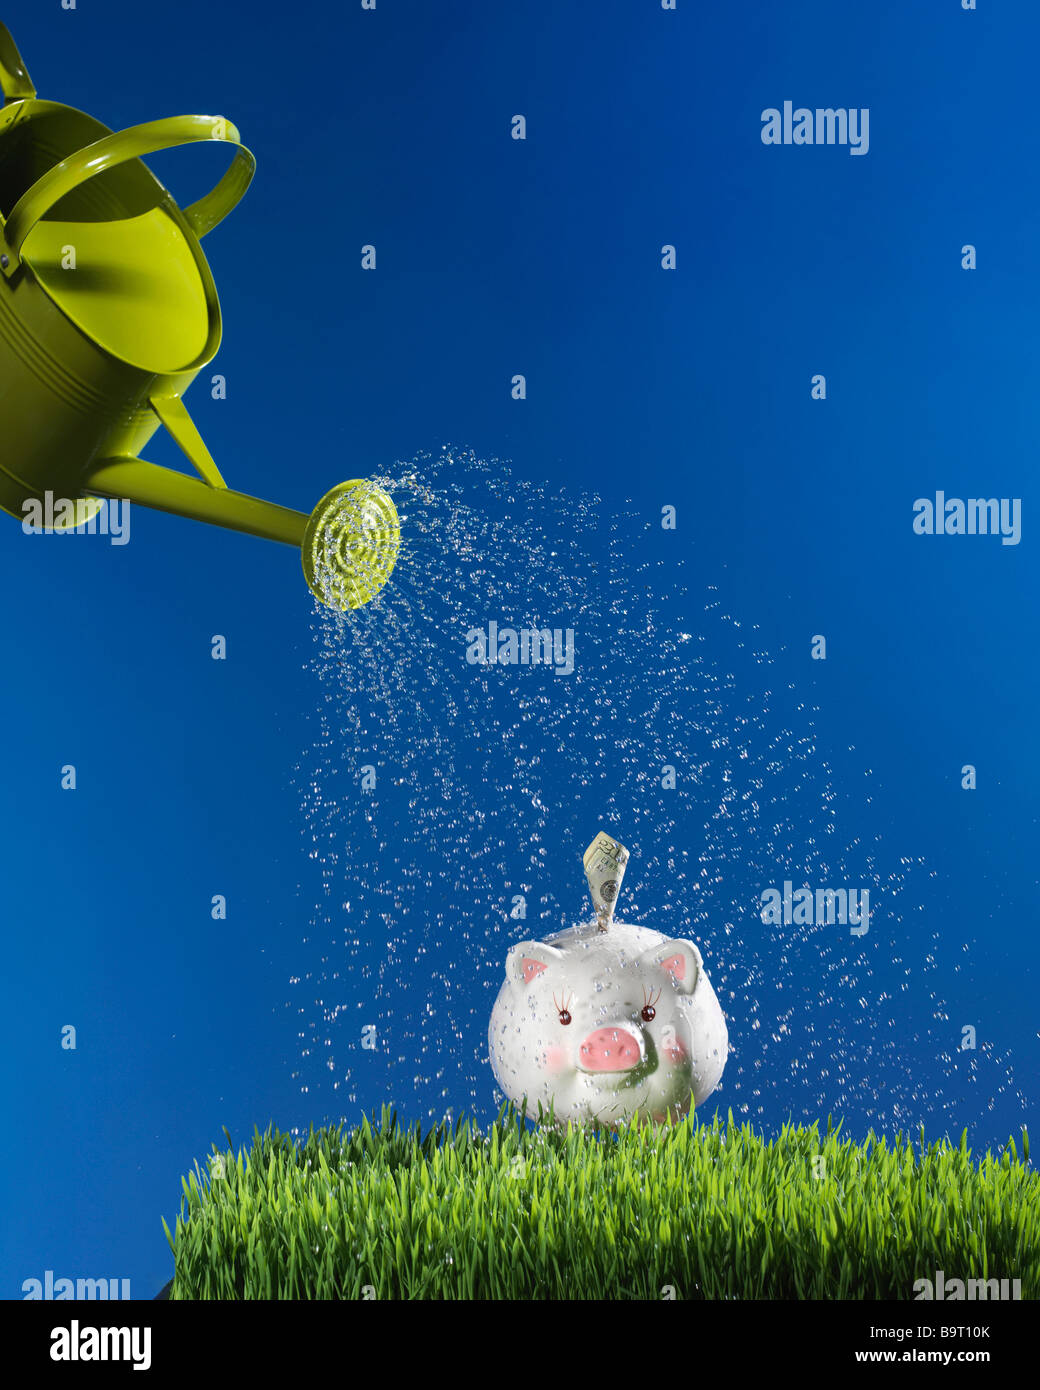 watering can sprinkling water onto piggy bank in grass with blue sky - Stock Image